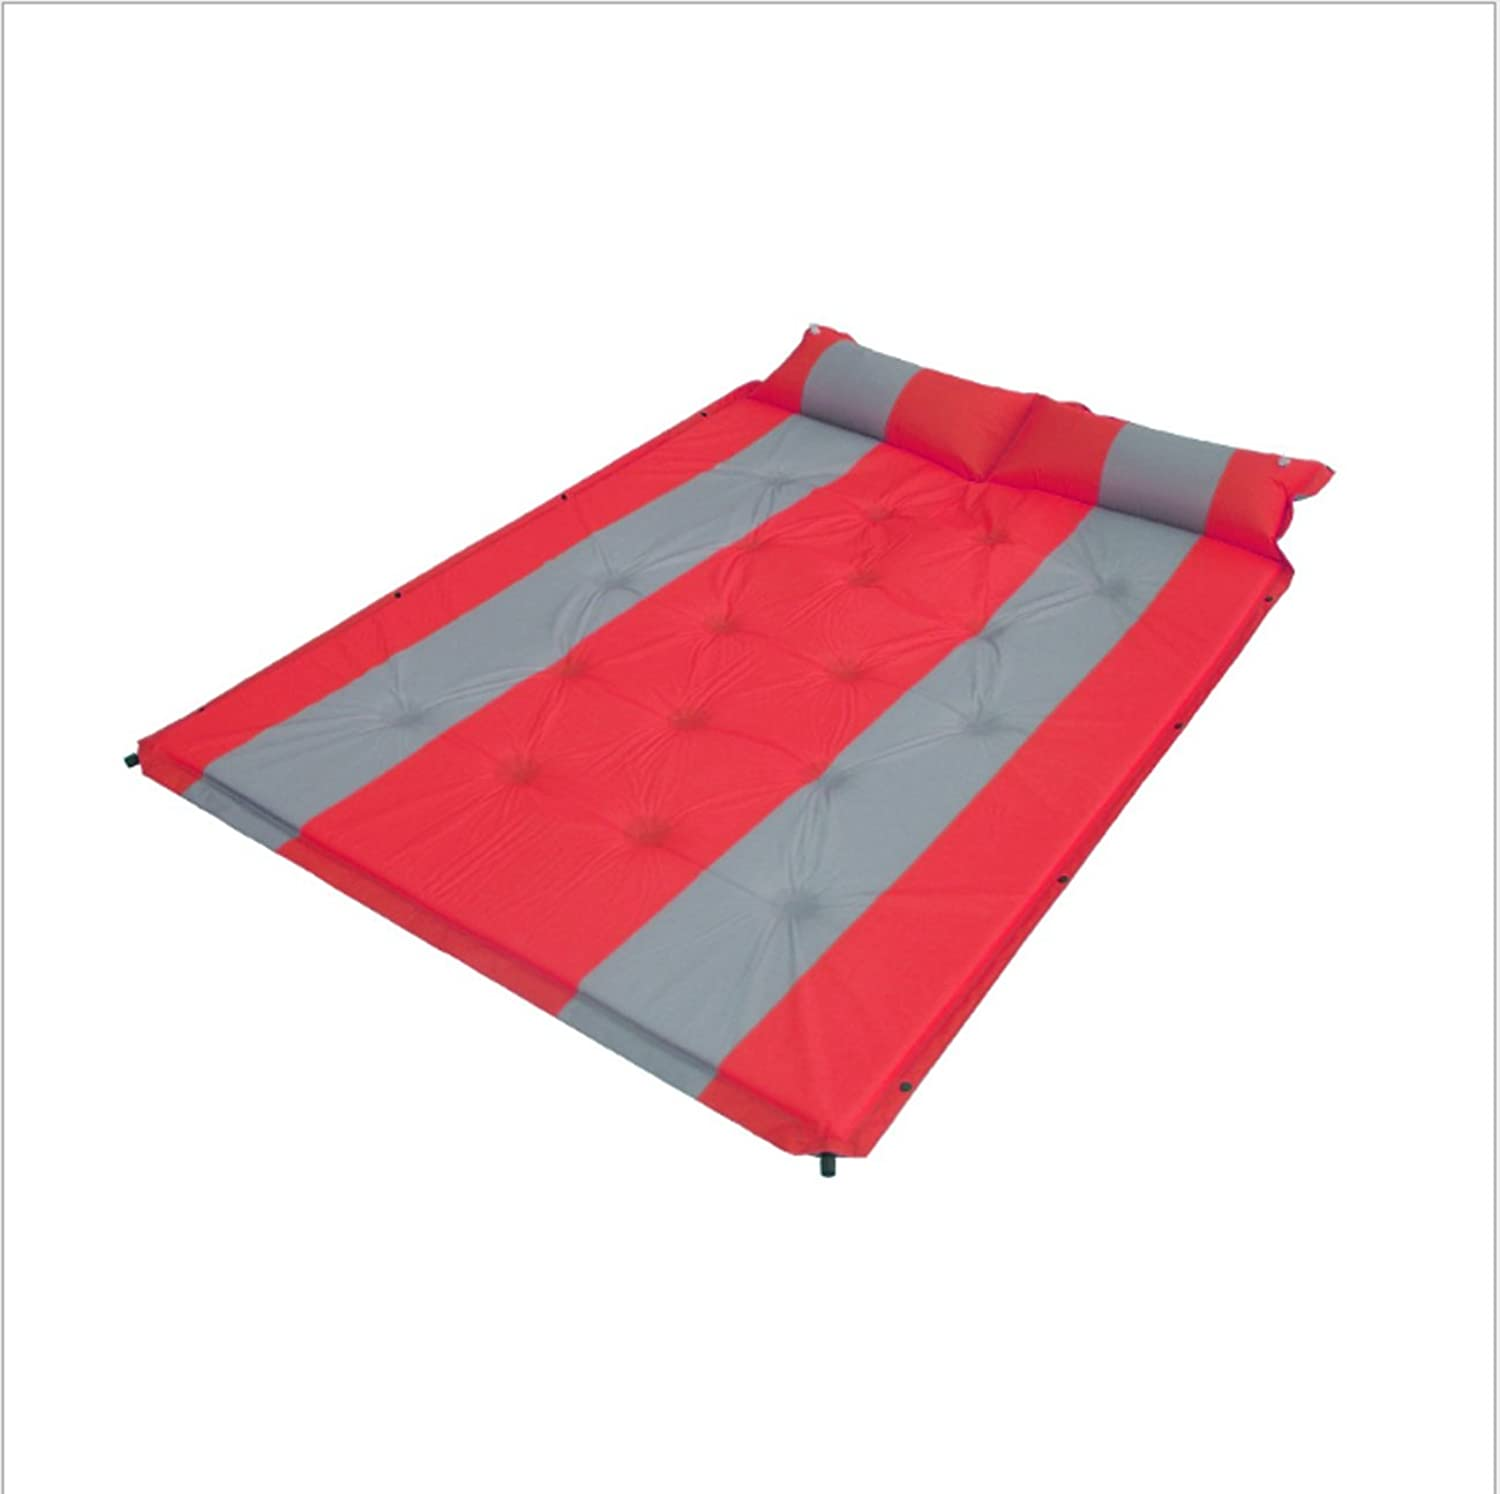 Inflatable Sleeping Mat Double Water&Moisture Proof Camping Mattress with Pillow for Camping,Hiking,Travelling,Backpacking